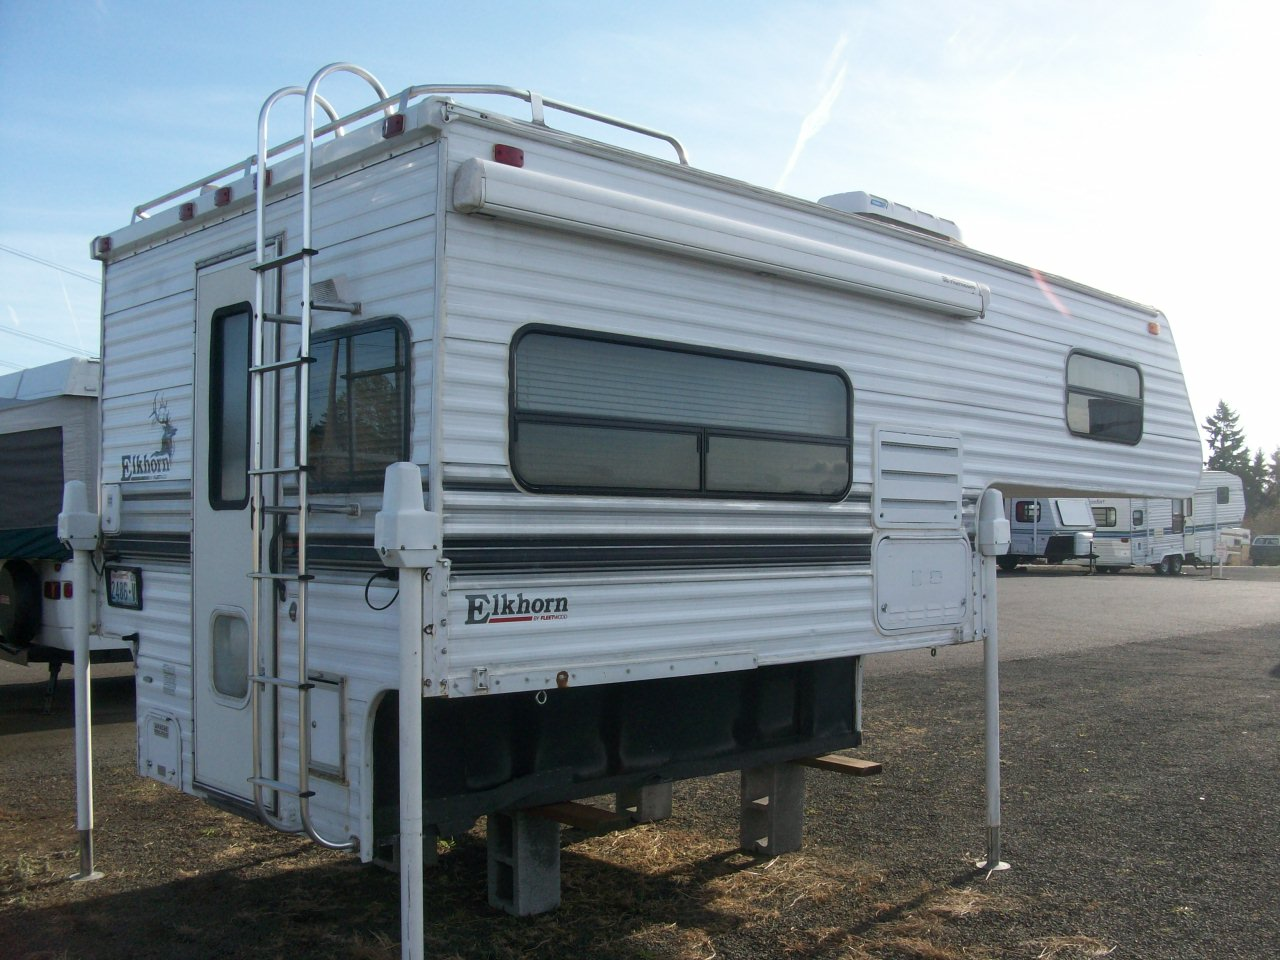 1998 Fleetwood 8 Elkhorn Slide In Camper